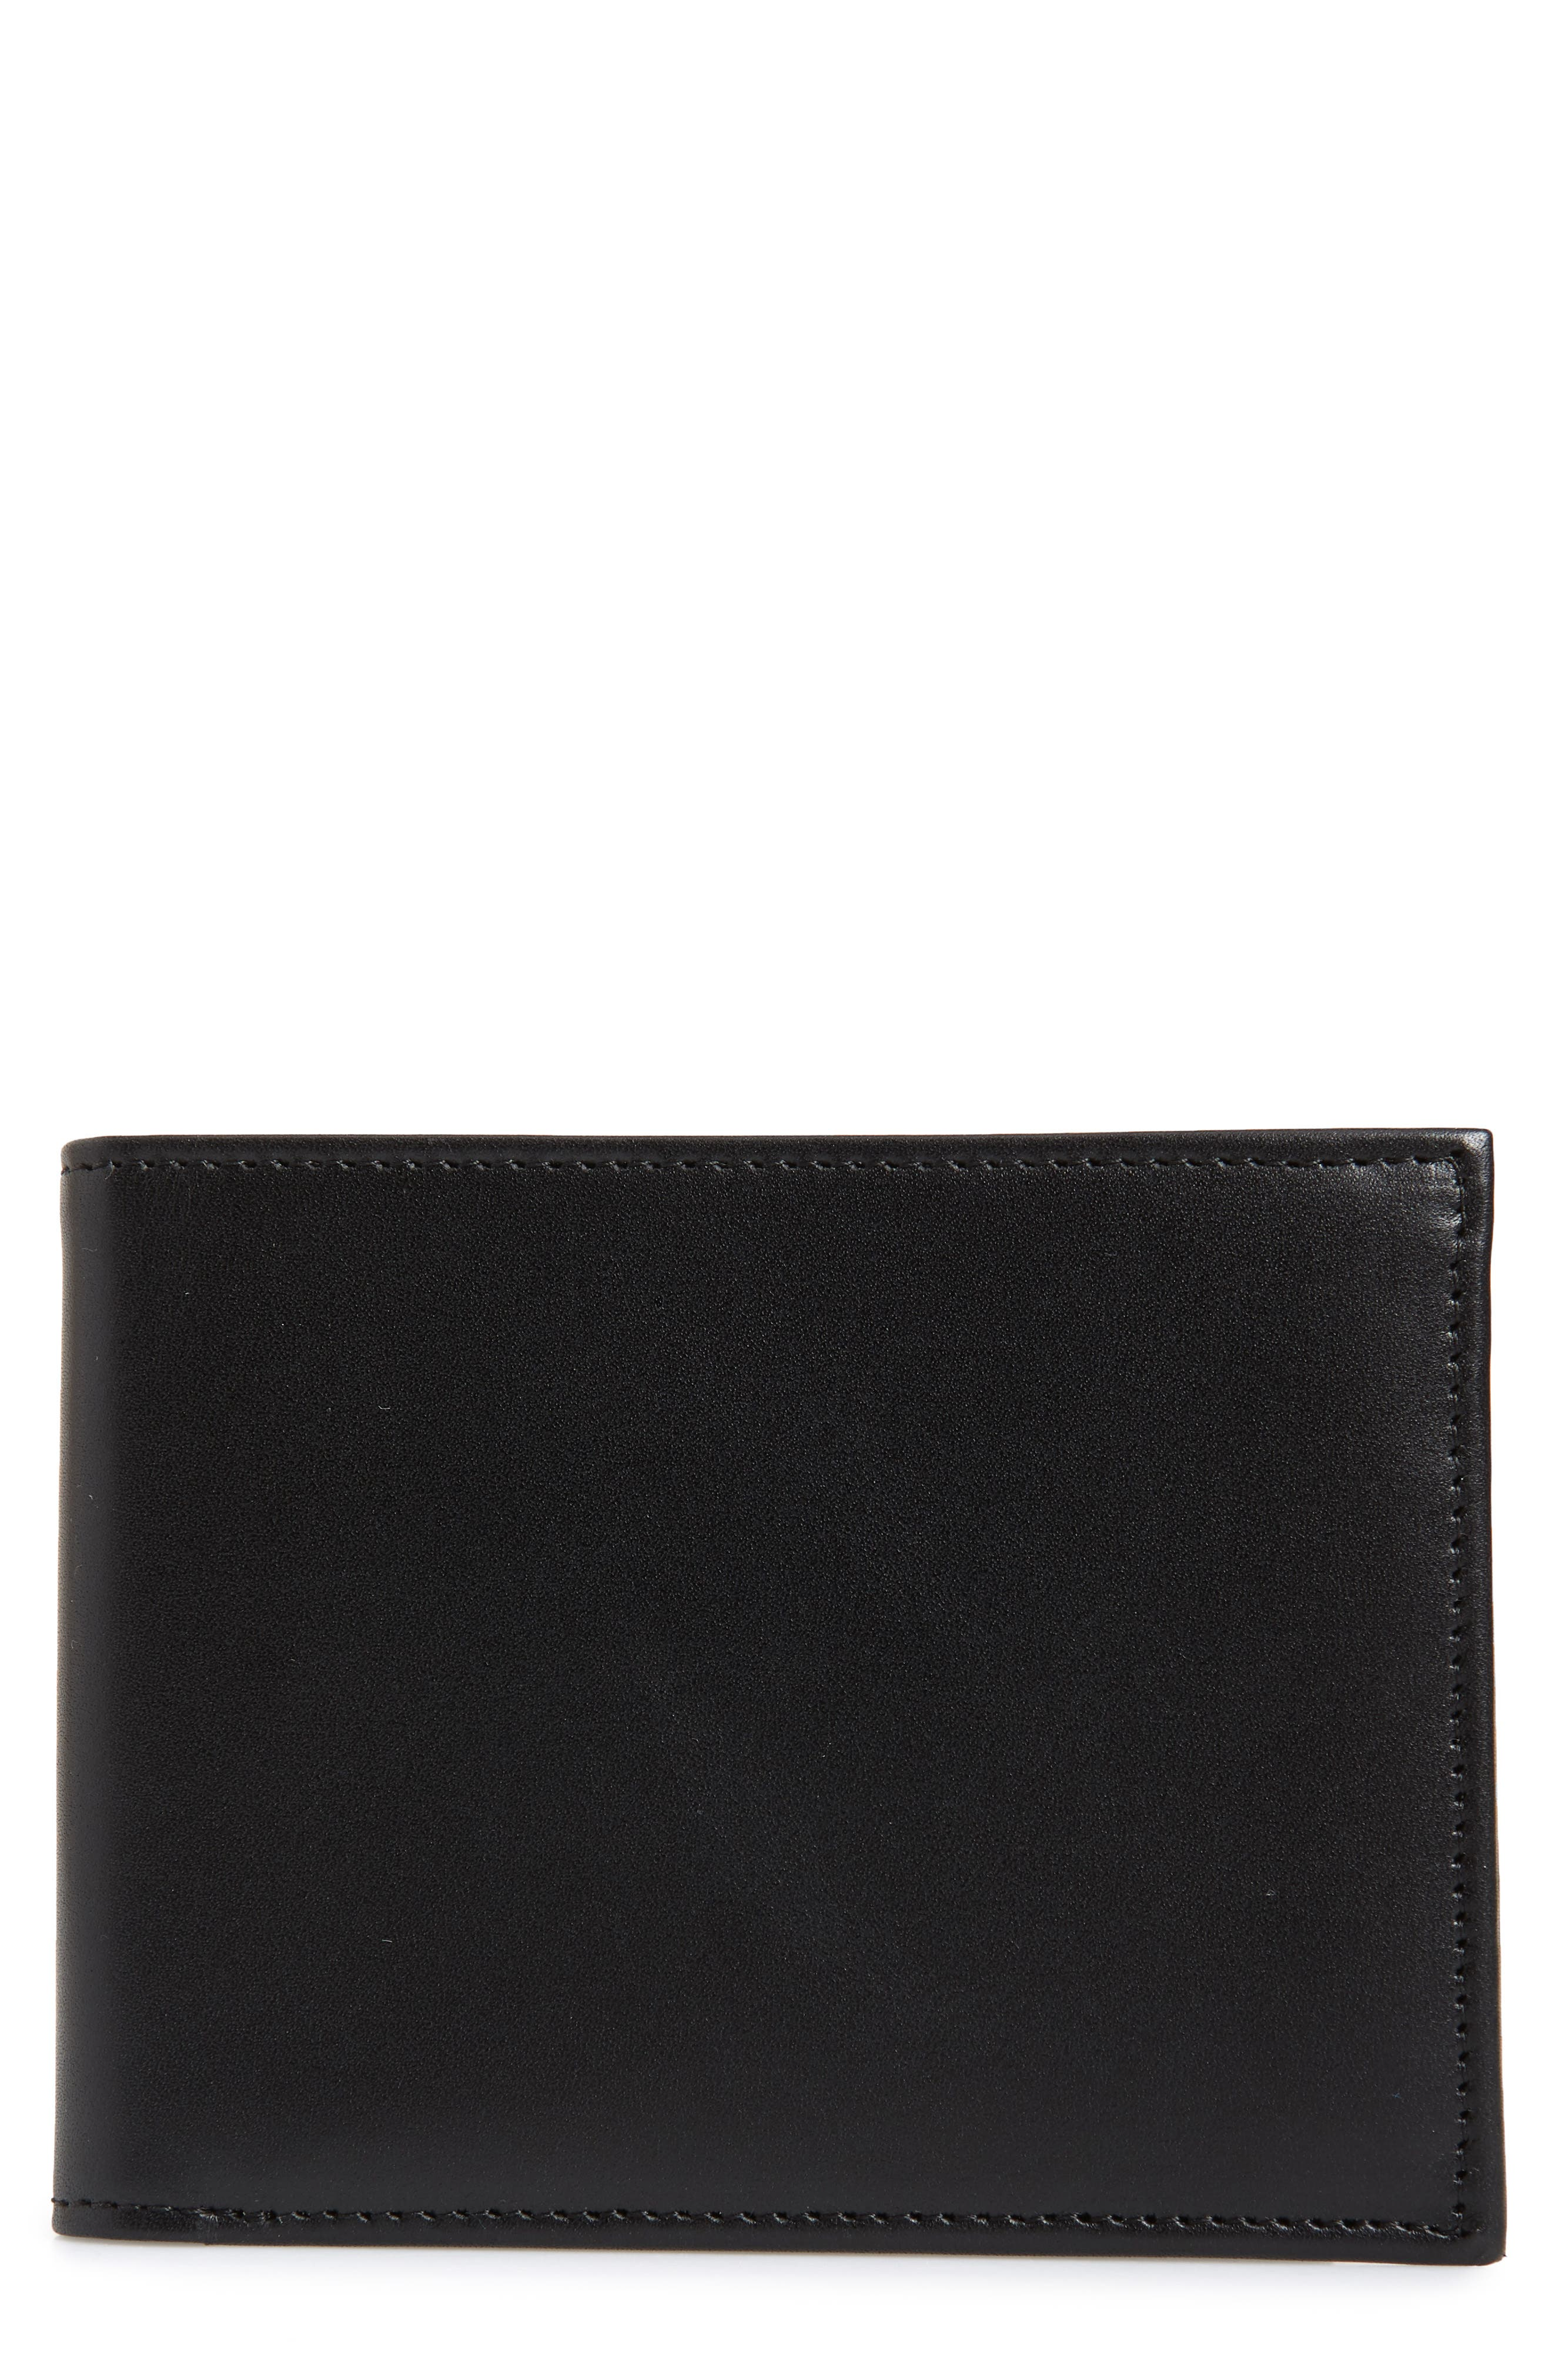 Men's Wallets | Nordstrom